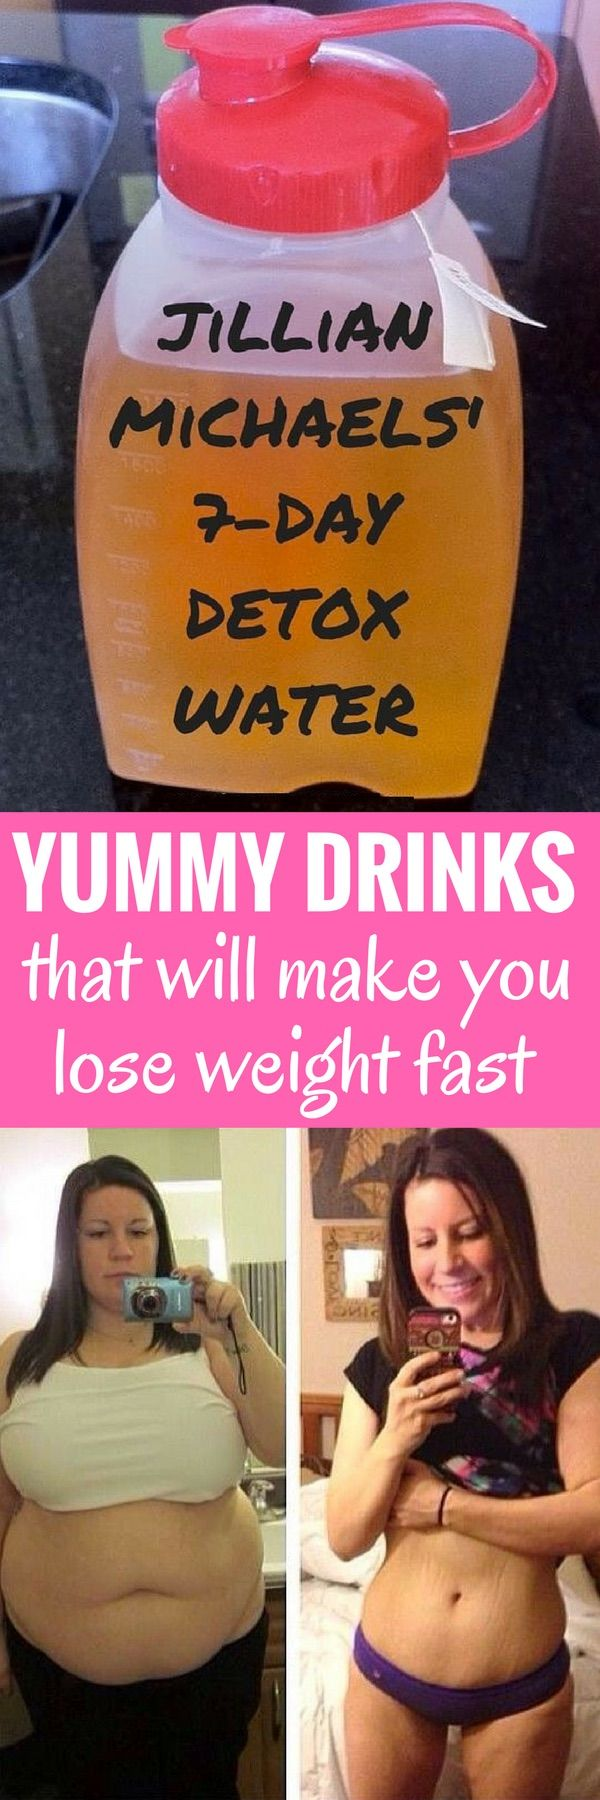 8 really delicious drinks - that will also make you lose weight fast